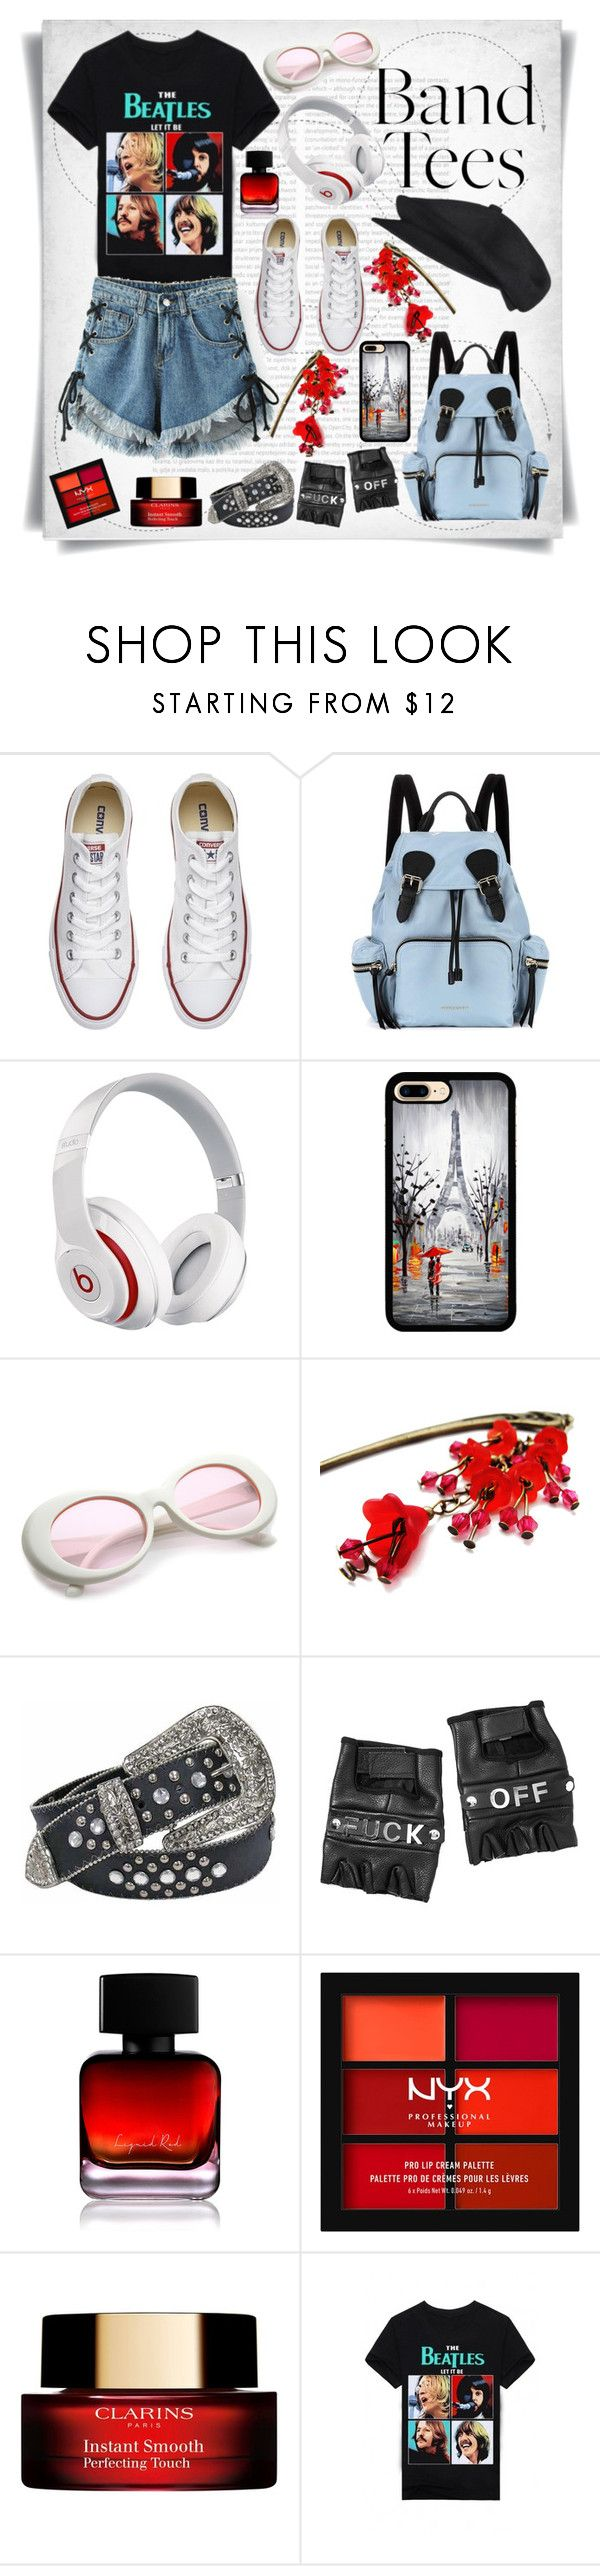 """""""I'm With the Band: Band T-Shirts"""" by imbeauty ❤ liked on Polyvore featuring Oris, Converse, Burberry, Beats by Dr. Dre, Funk Plus, The Collection by Phuong Dang, NYX, Clarins, WithChic and bandtees"""